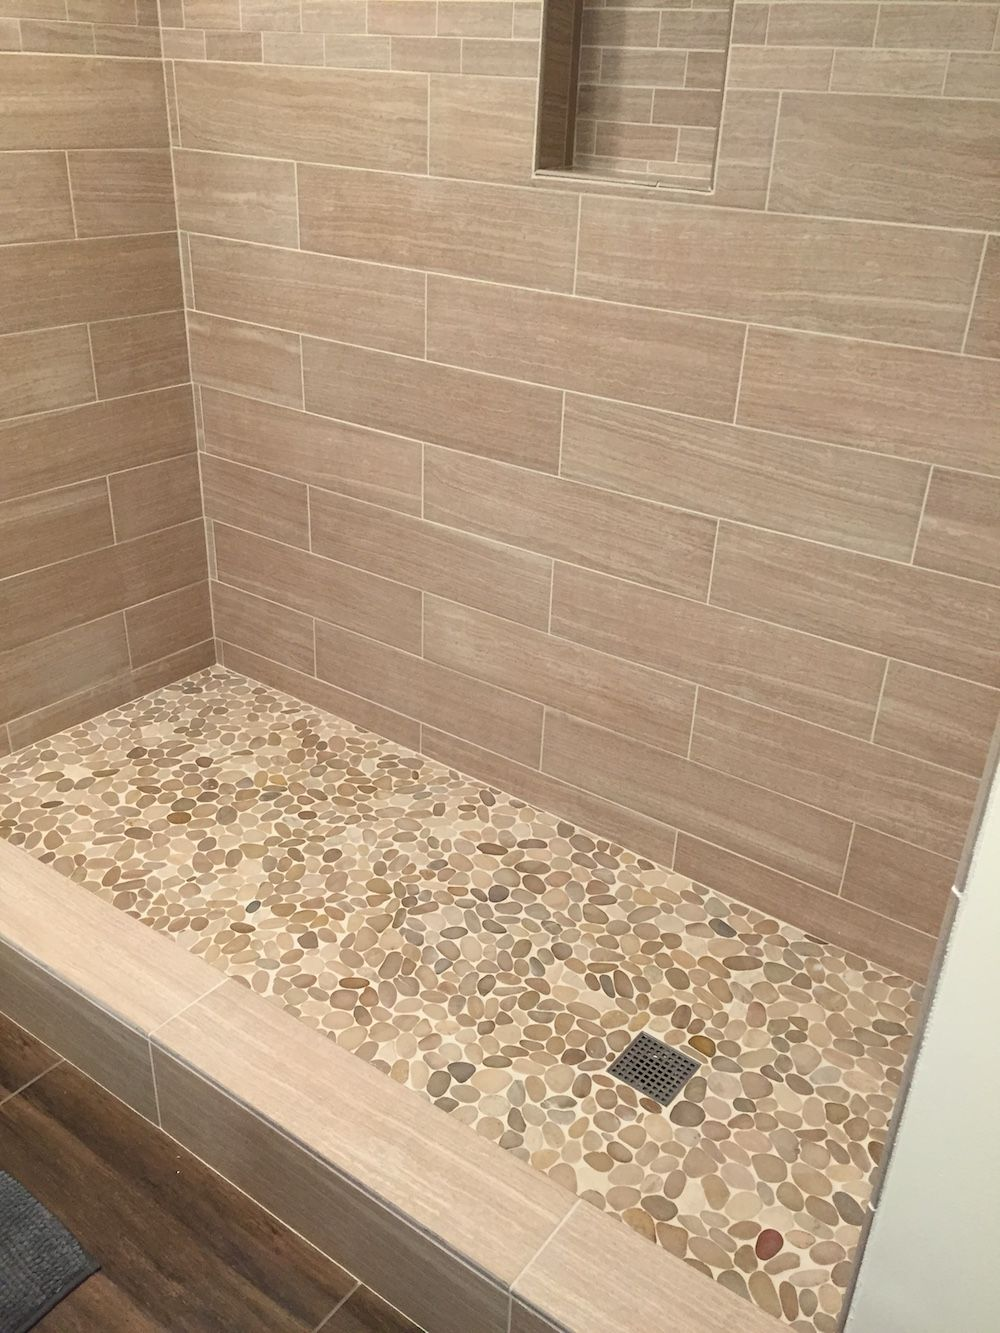 Showing Tiling Cost Factors With Images Bathroom Remodel